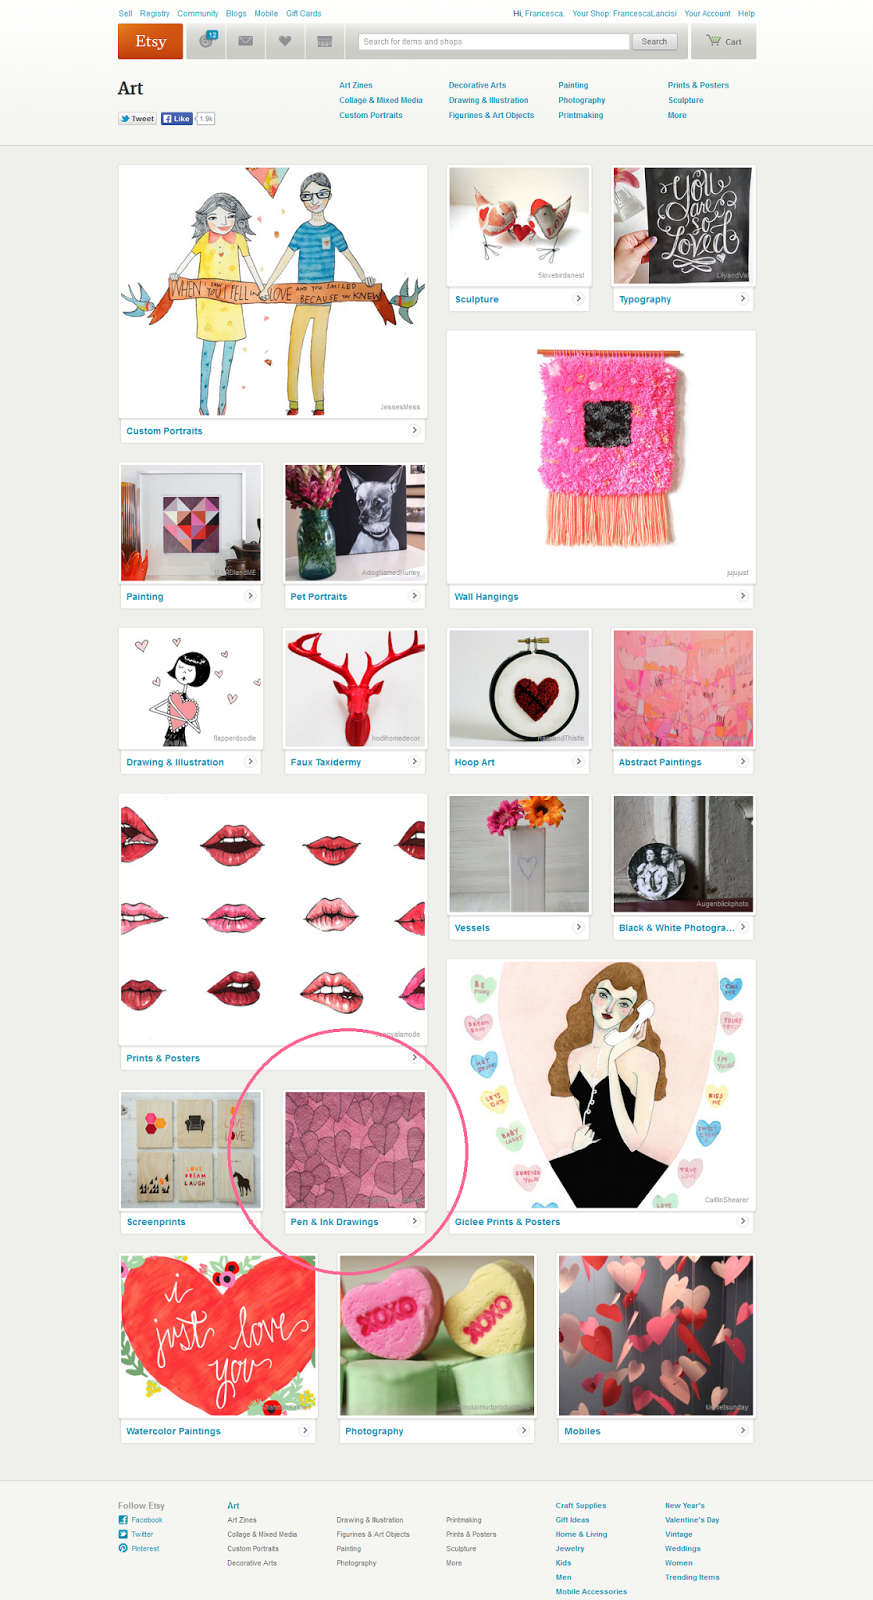 ETSY+FP+ART+SEARCH+11.01.2013+-+Copia.png